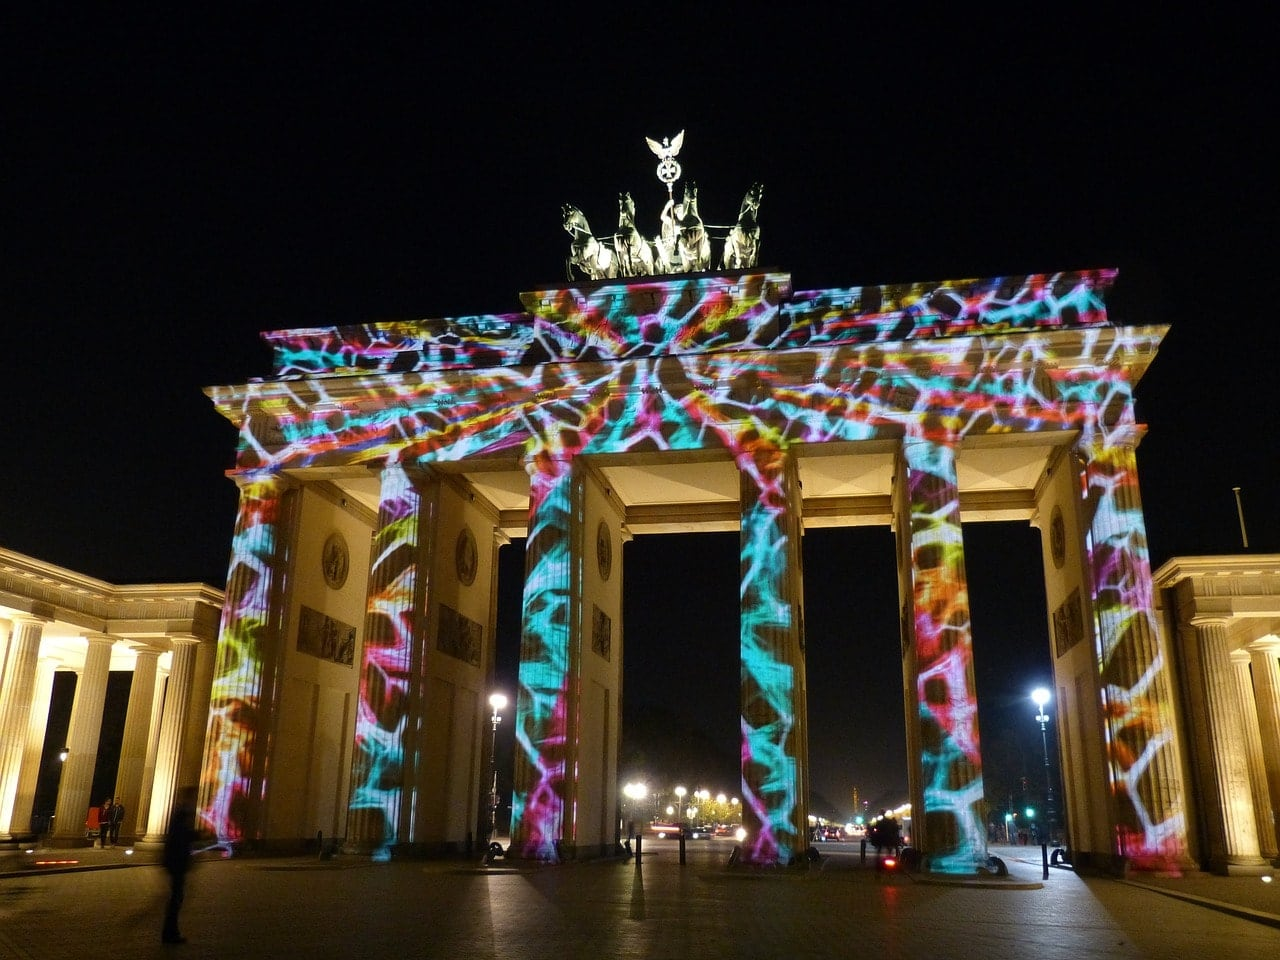 berlinerumschau-festival-of-lights-brandenburger-tor-erleuchtet